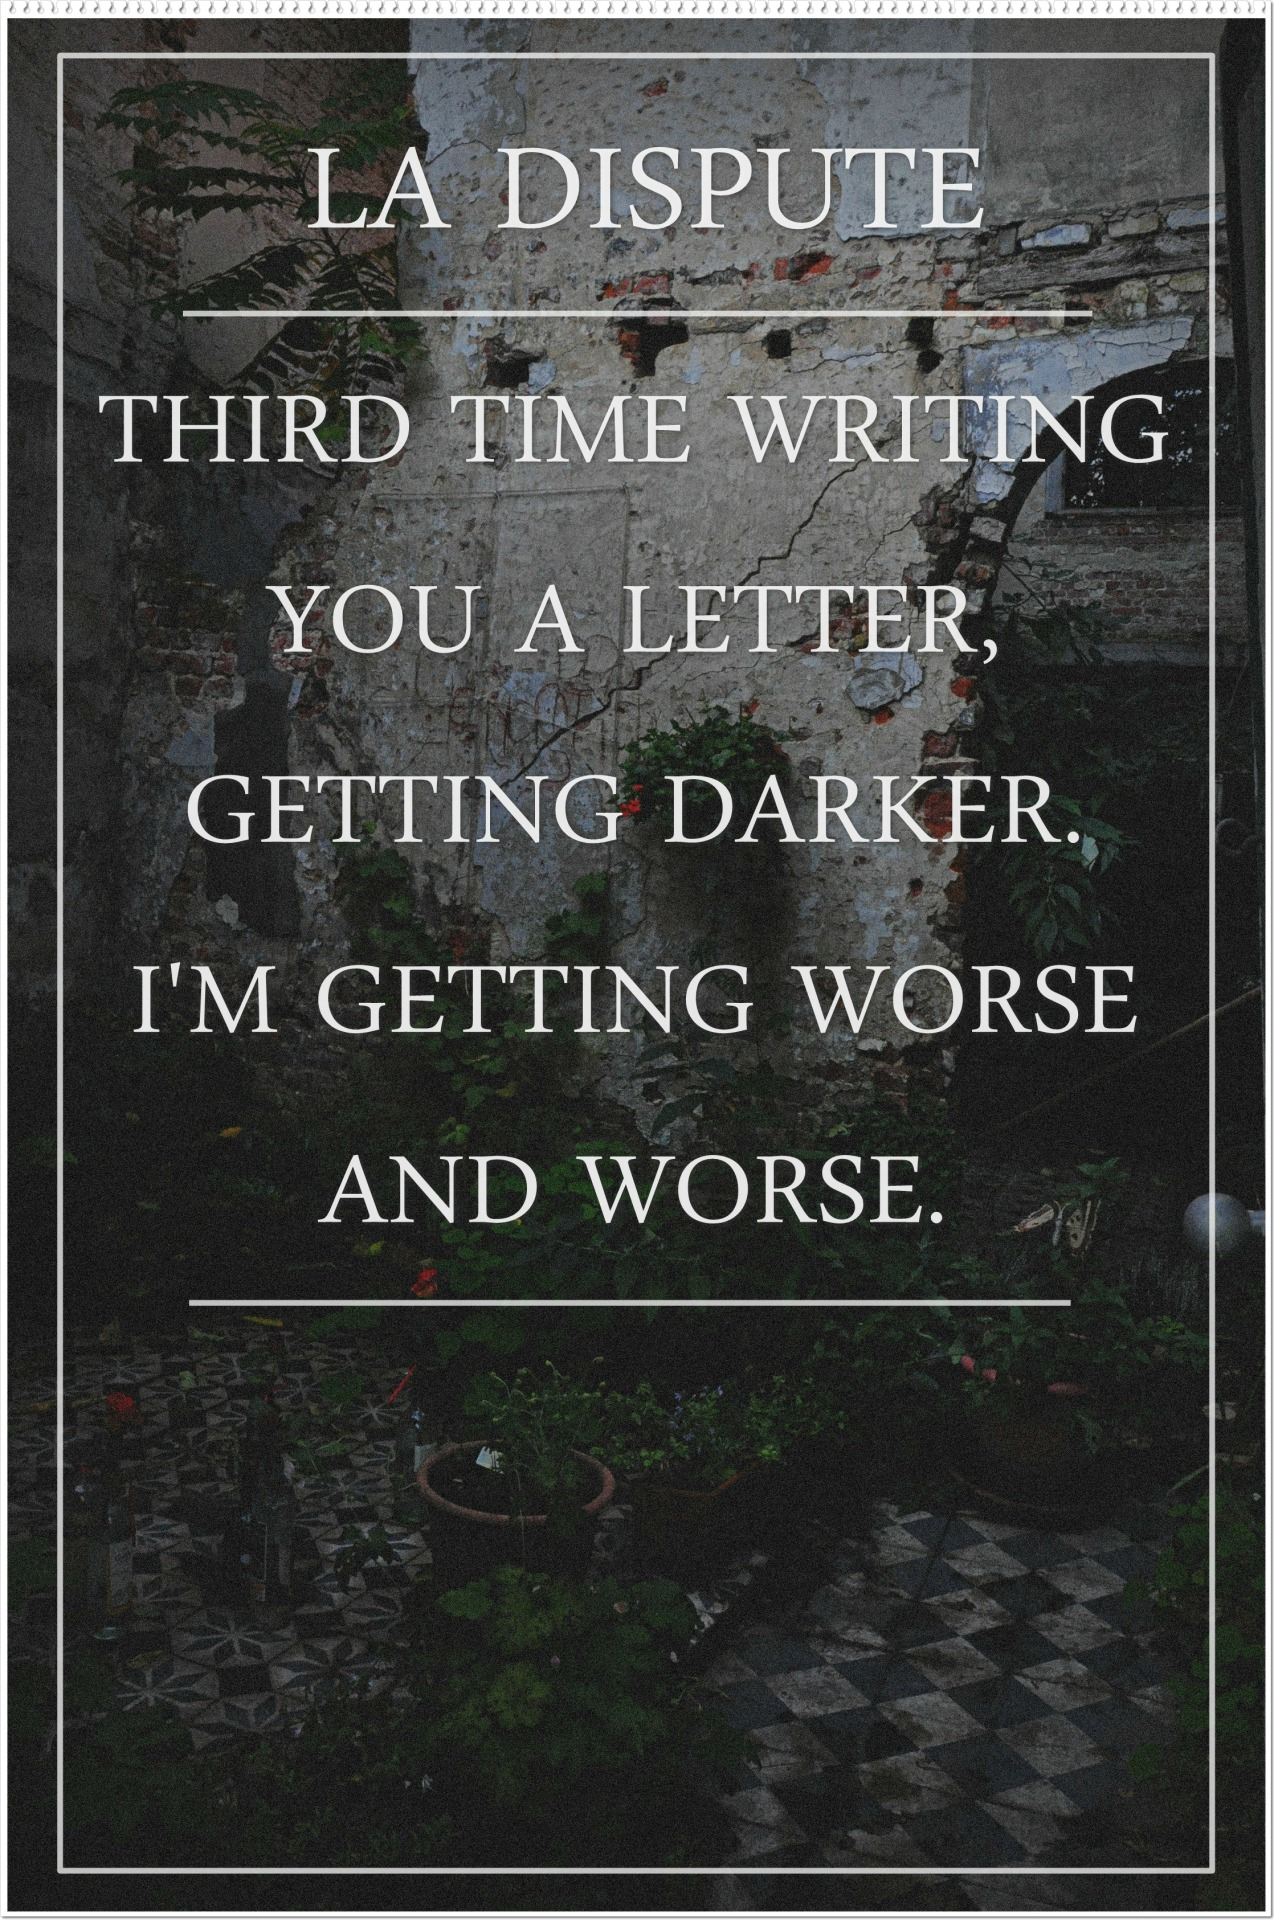 Third time writing you a letter, getting darker. I'm getting worse and worse. - a Poem // La Dispute